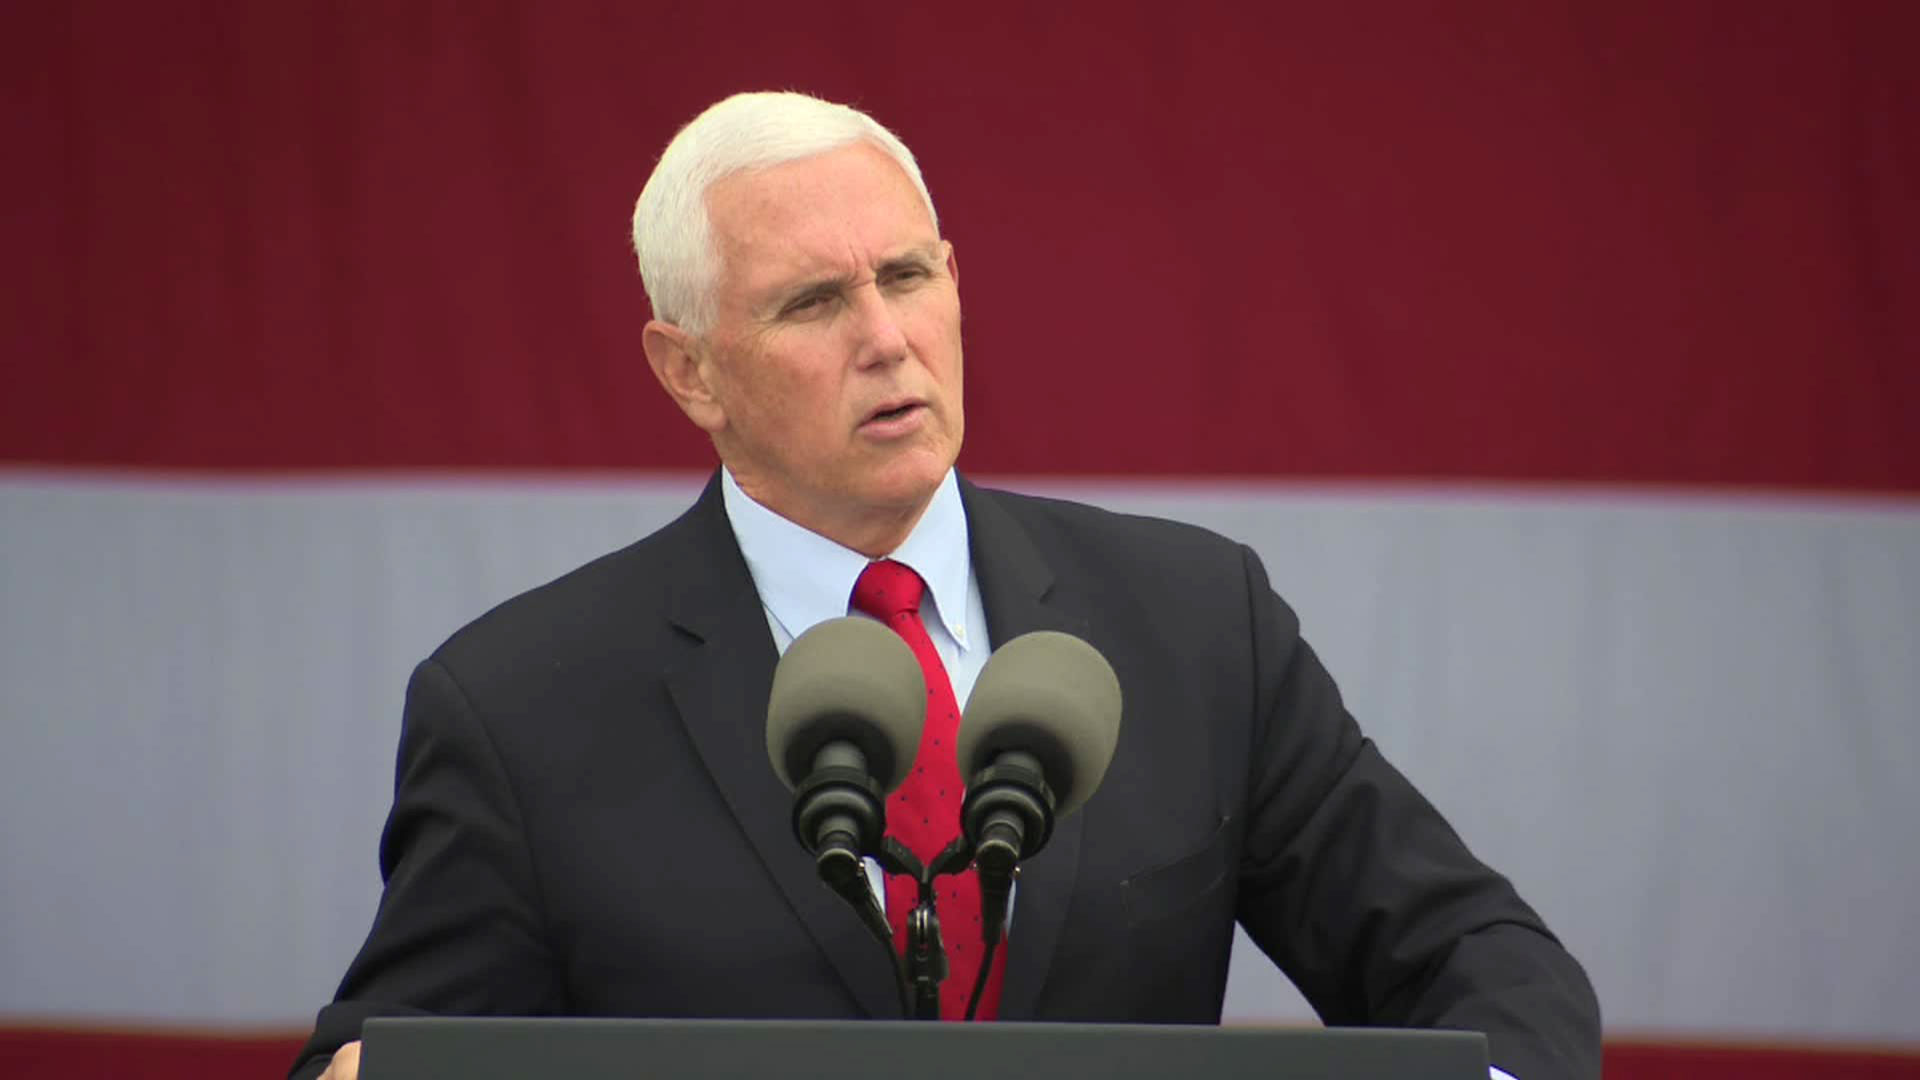 Vice President Mike Pence speaks at a campaign event in Selma, North Carolina, on Friday, October 16.